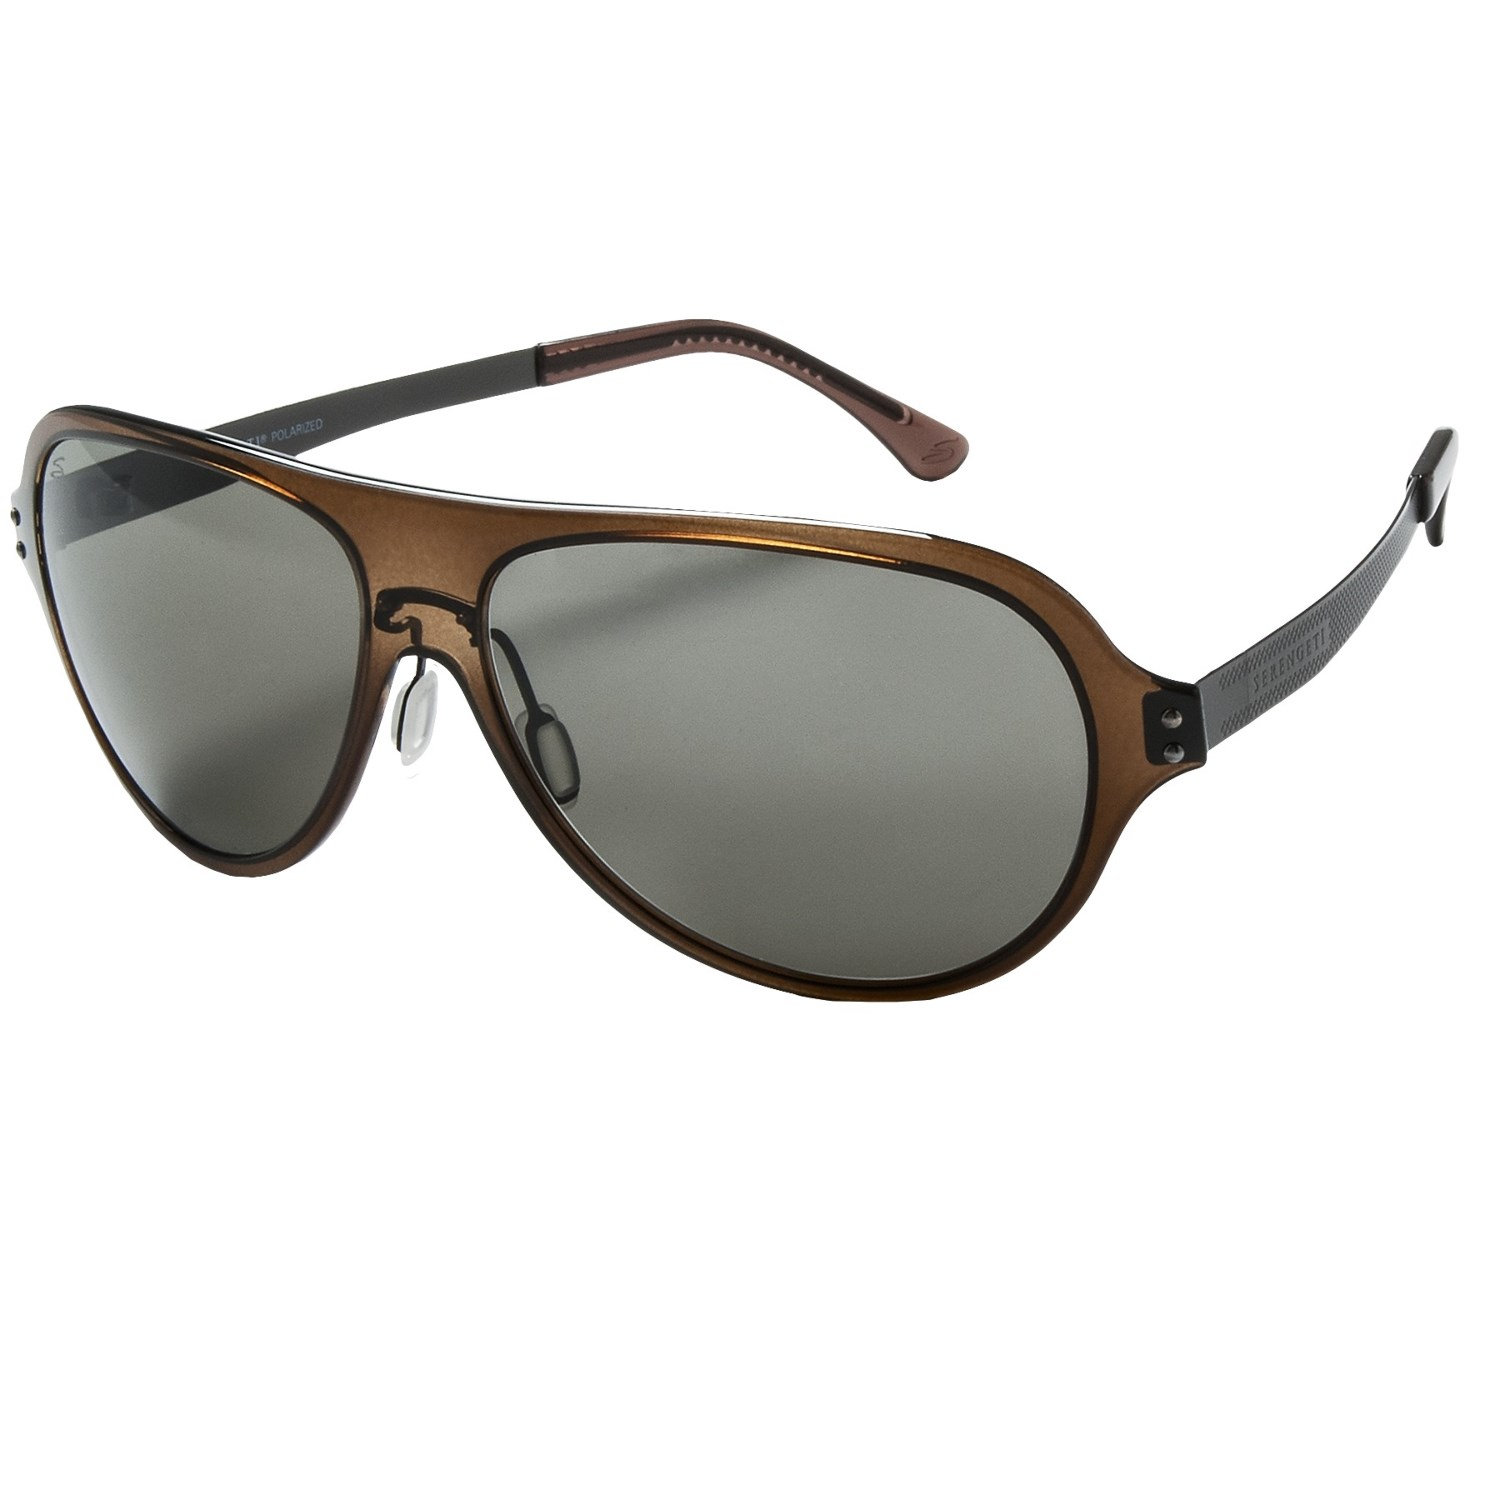 Serengeti Sunglasses Dealers  serengeti average savings of 54 at sierra trading post